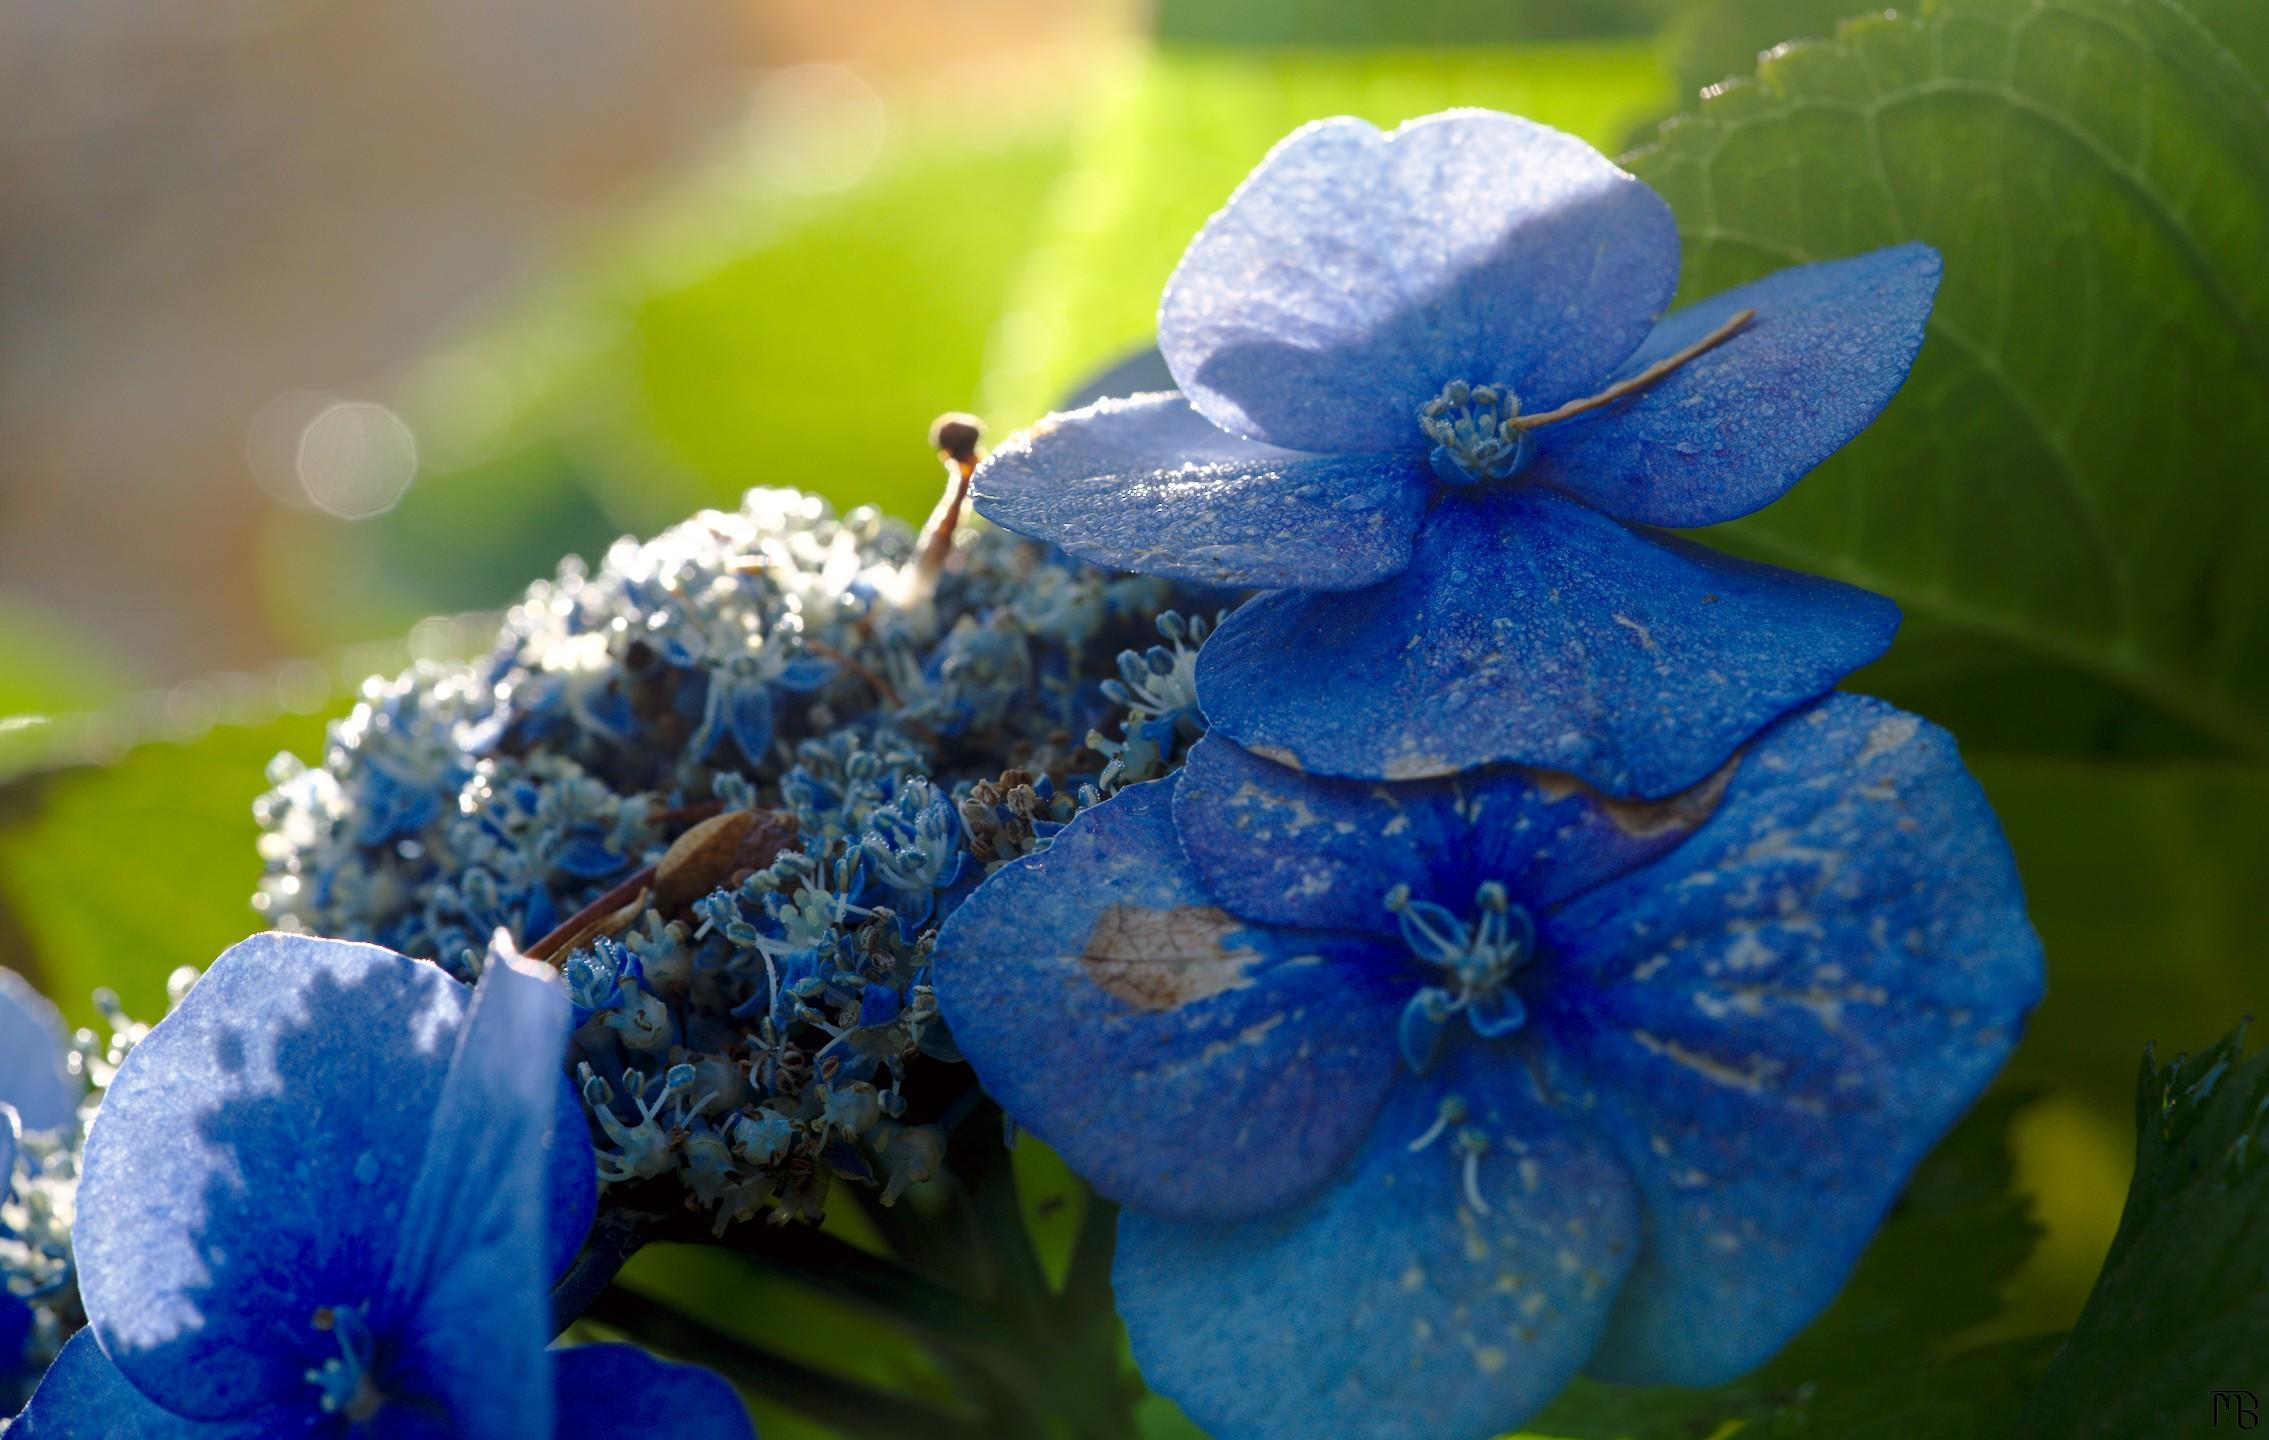 Blue flower petals with water drops